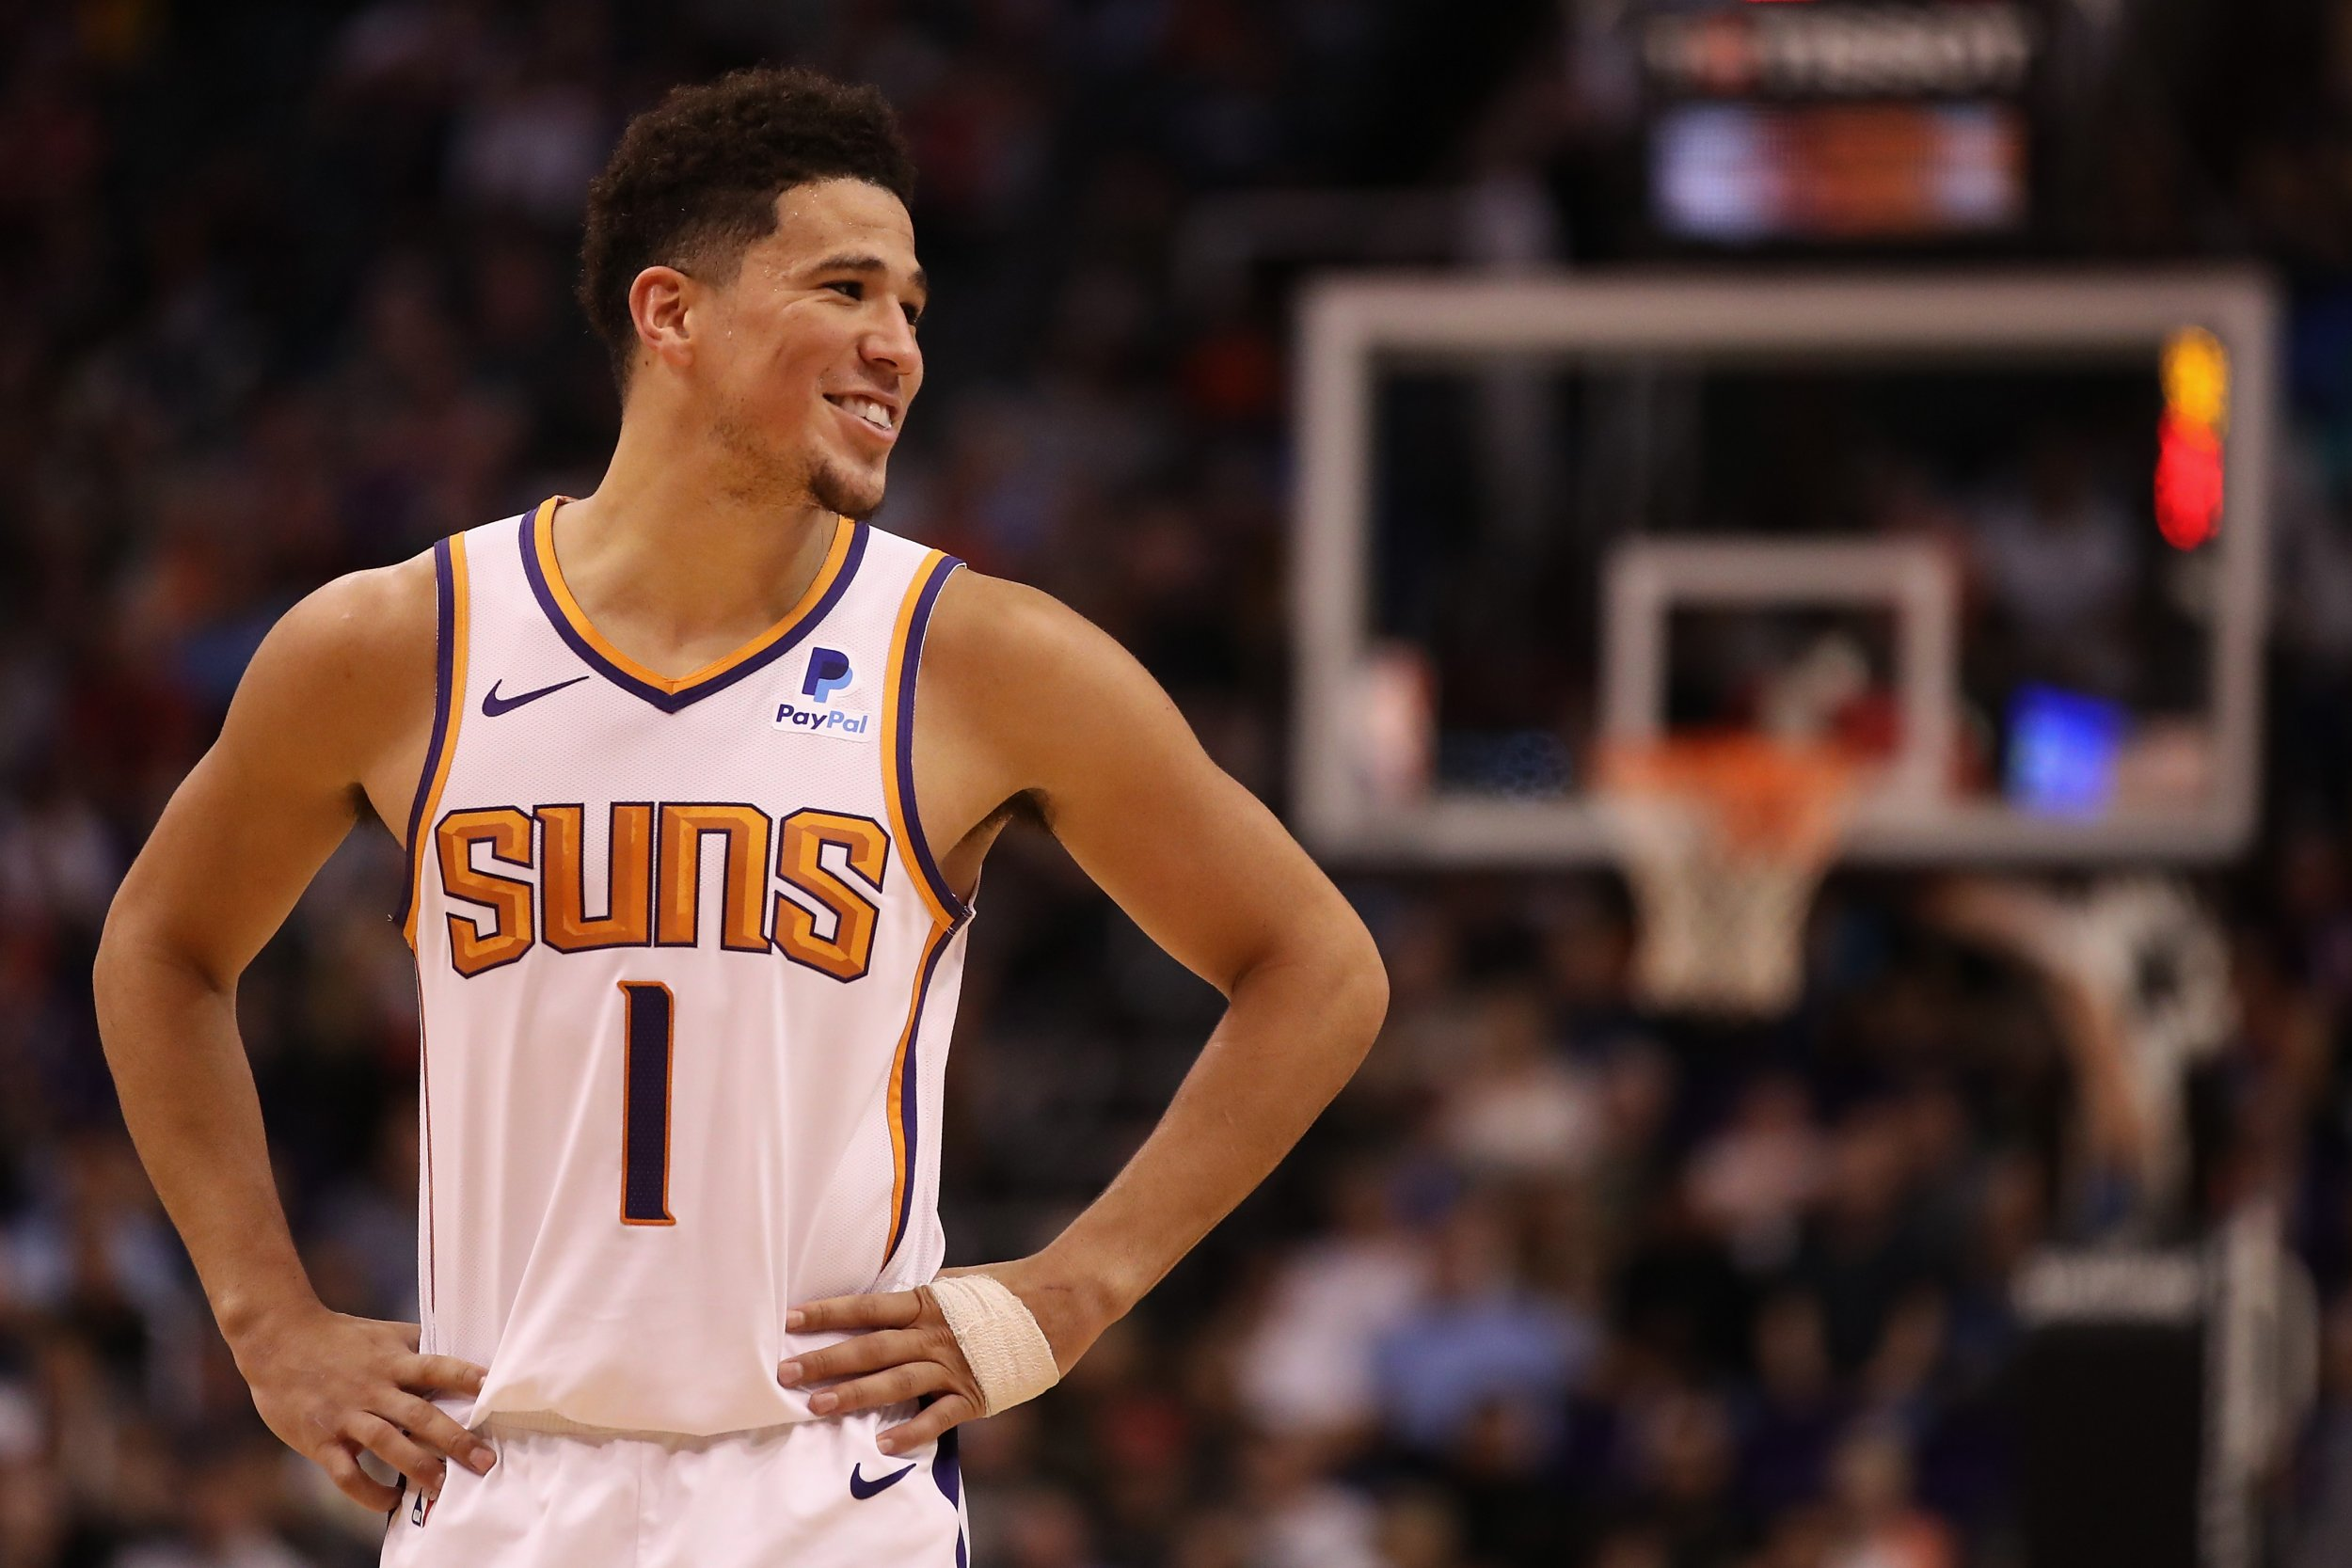 newest 1dbe8 8e6bd Devin Booker Makes NBA History With 59 Points in Loss Vs. Utah Jazz